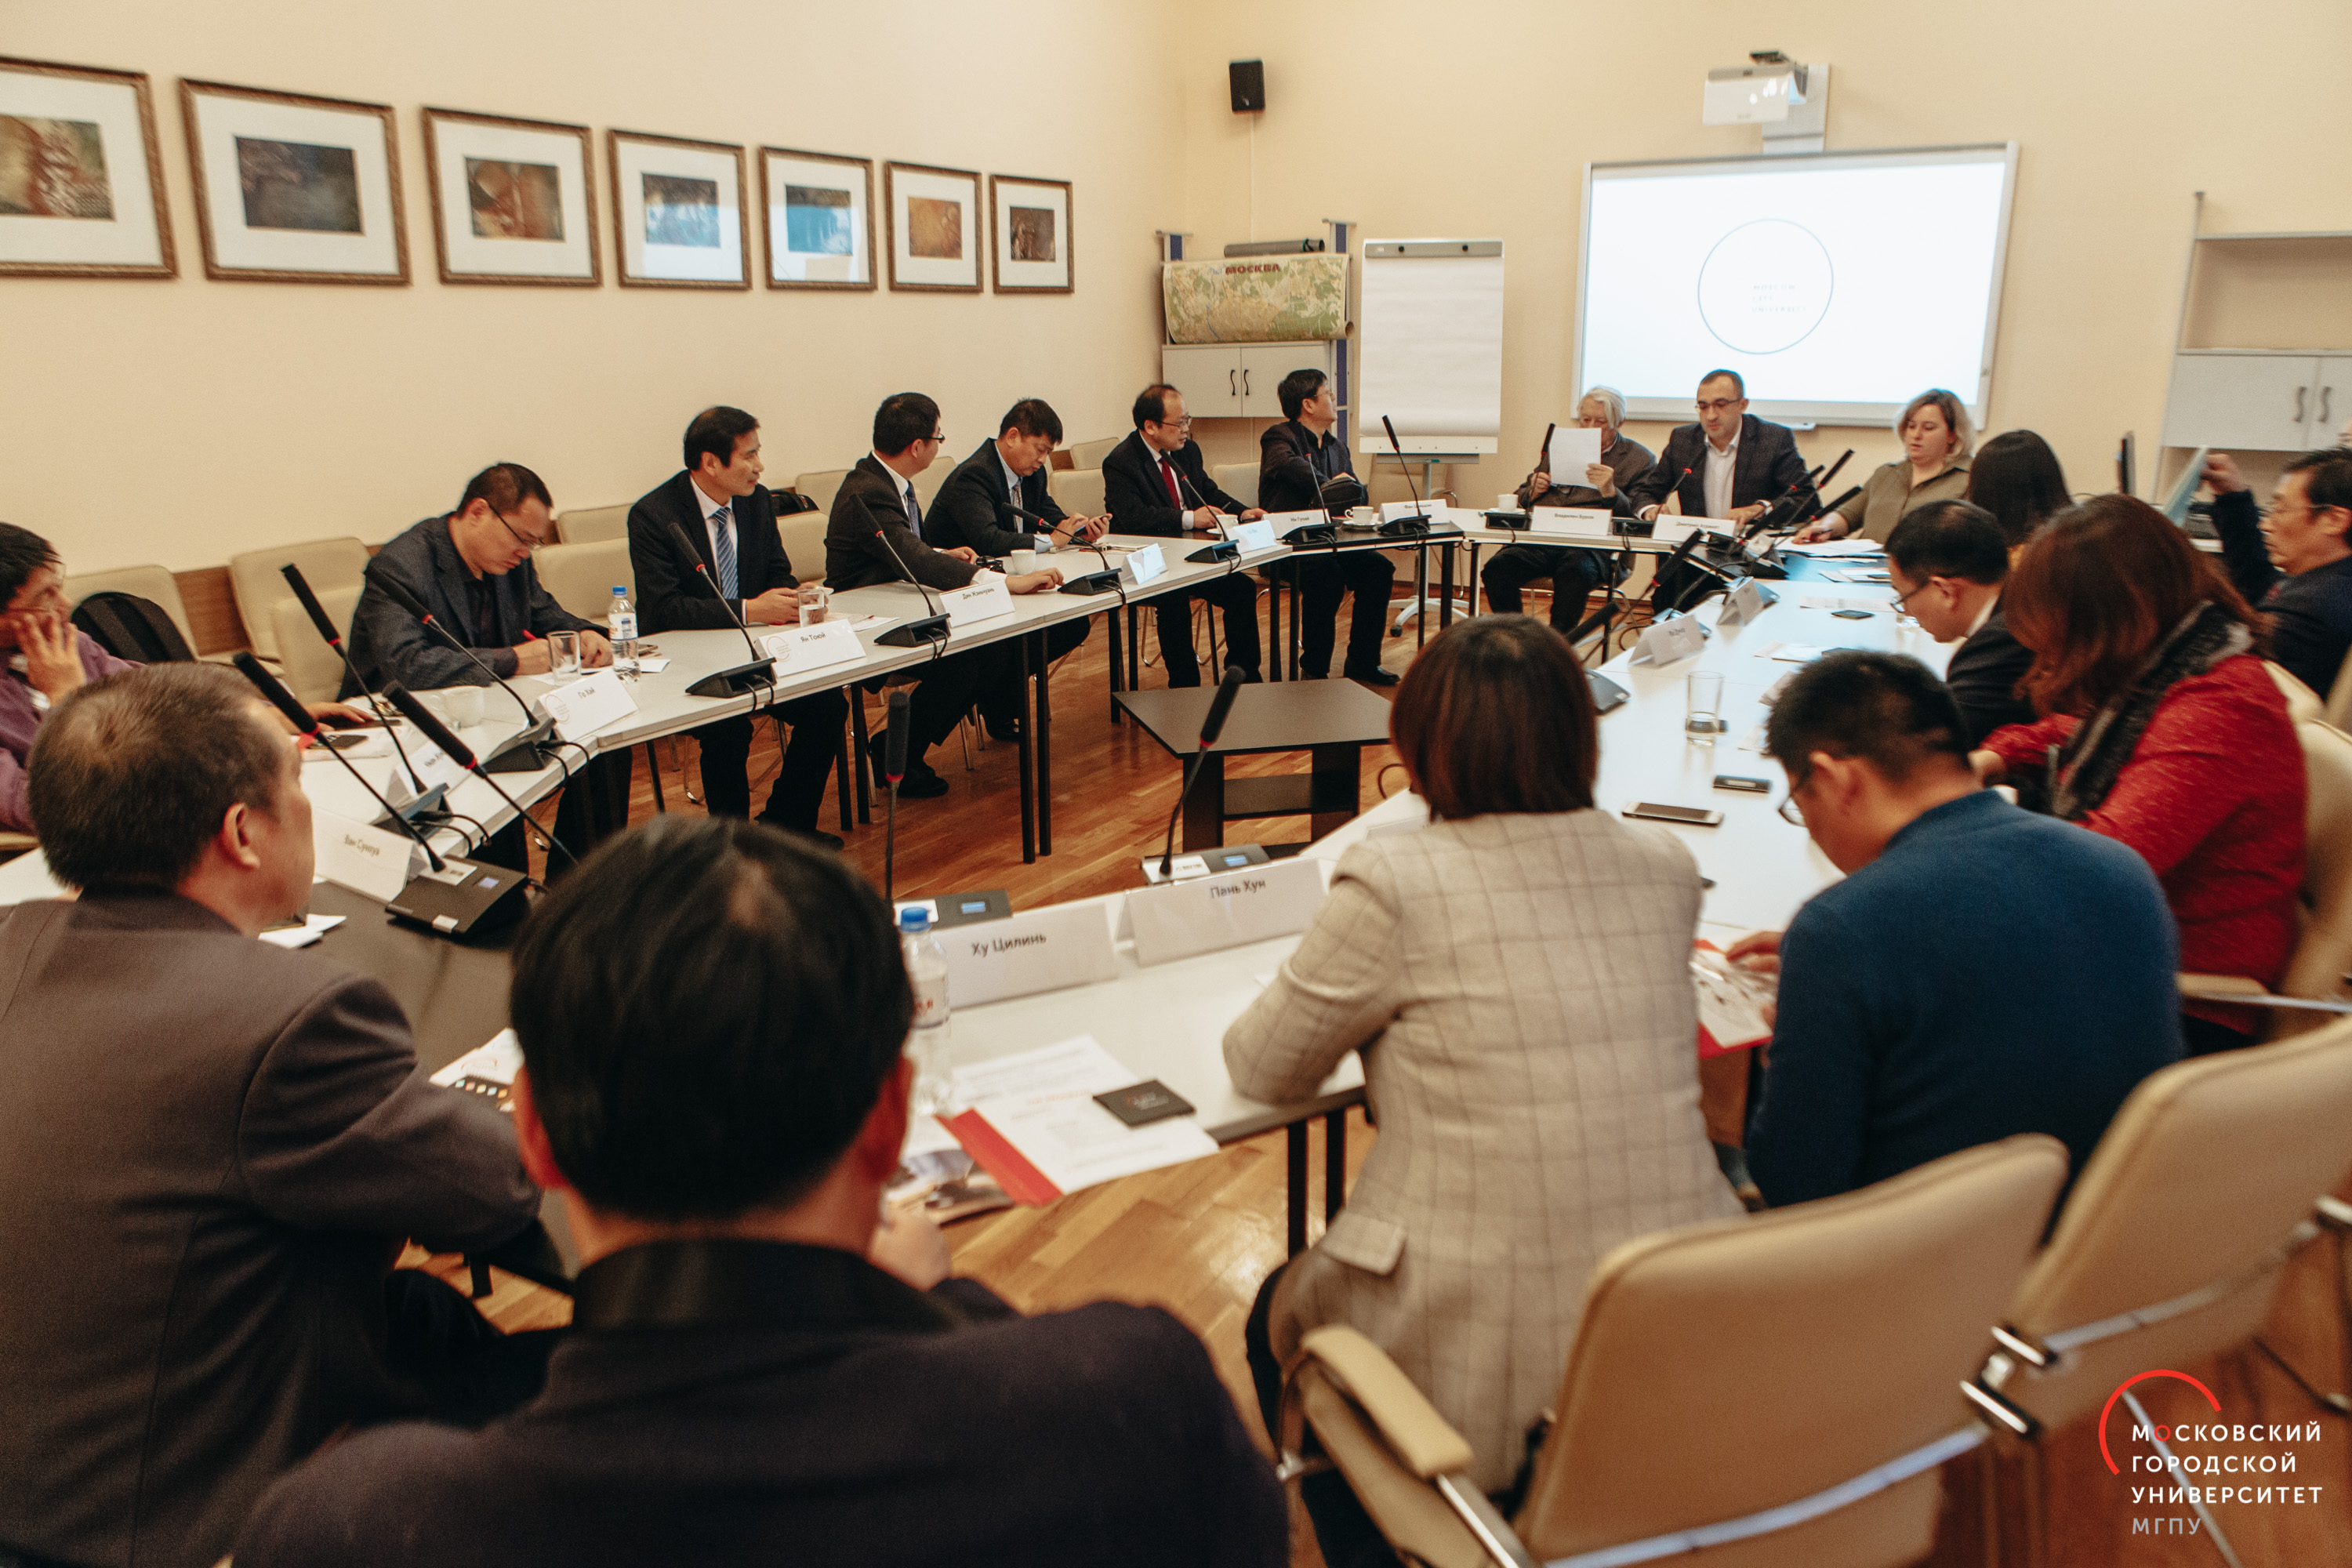 Delegation from China visiting MCU